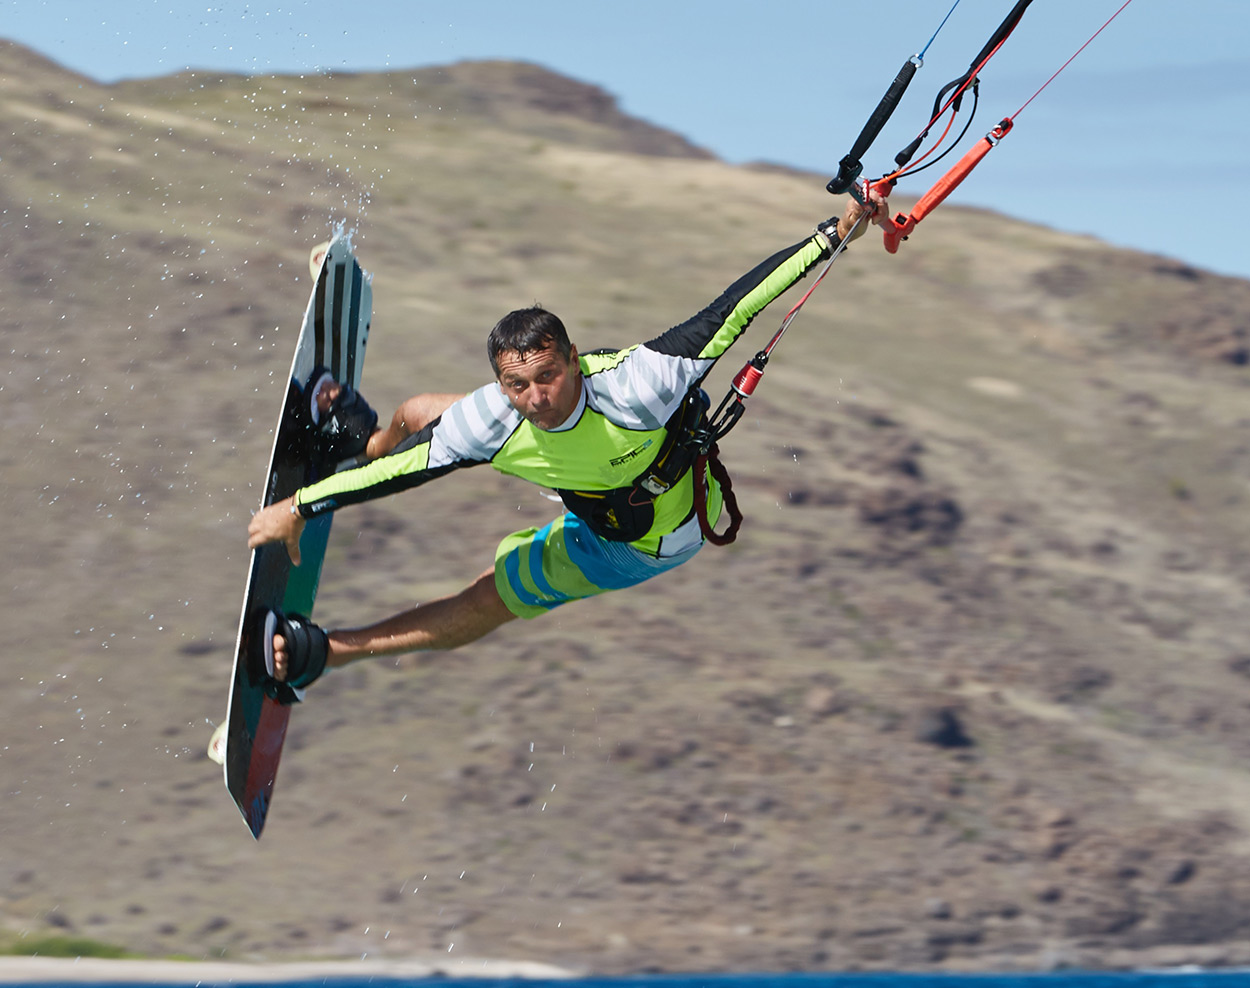 EPIC KITES KITEBOARDING | 6G Renegade Infinity V5 Kite Action